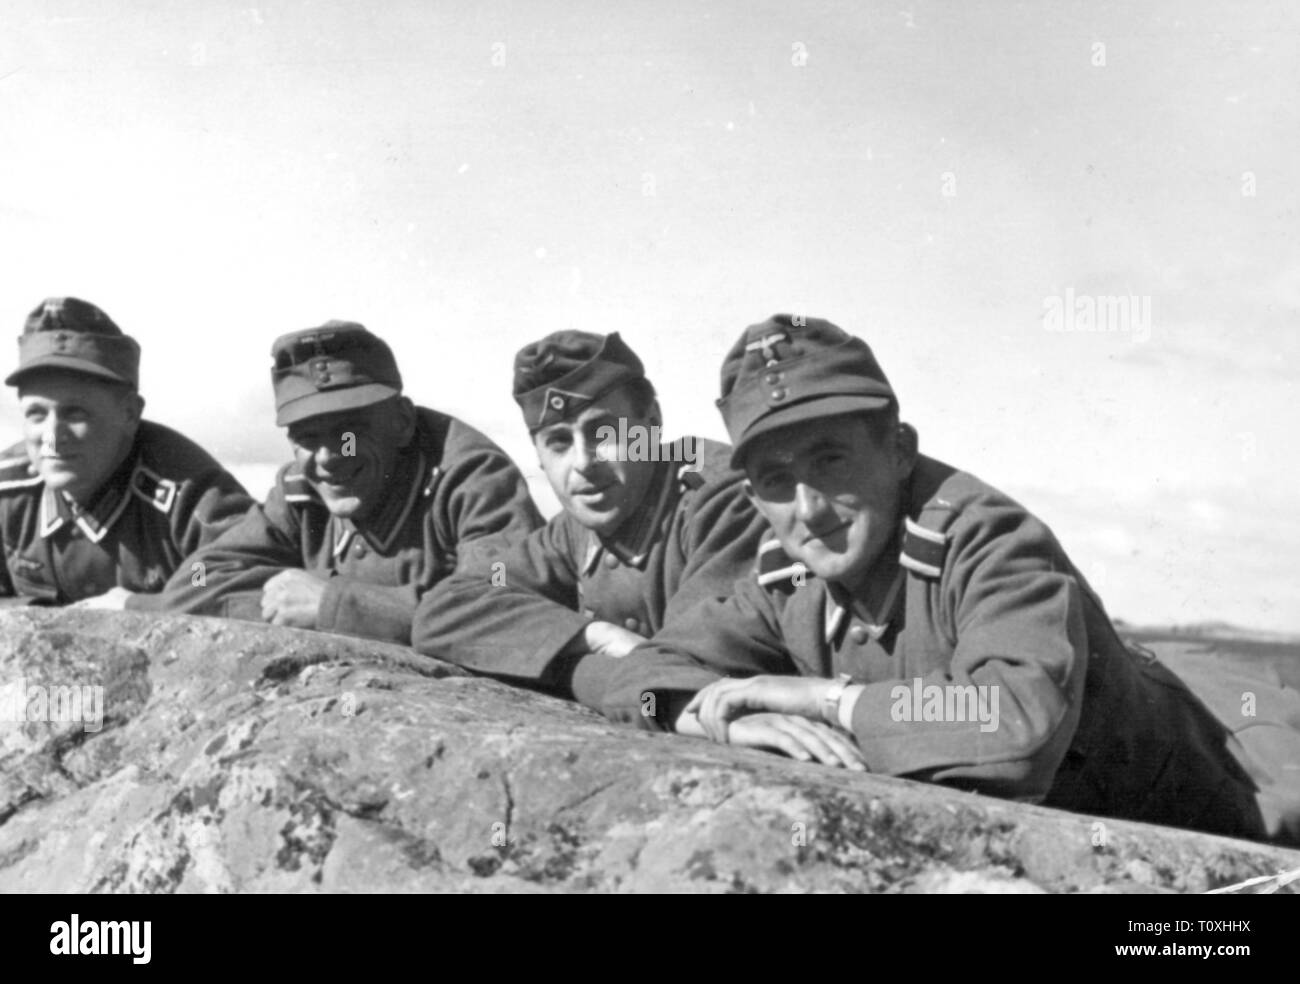 Second World War / WWII, German Wehrmacht, group of army non